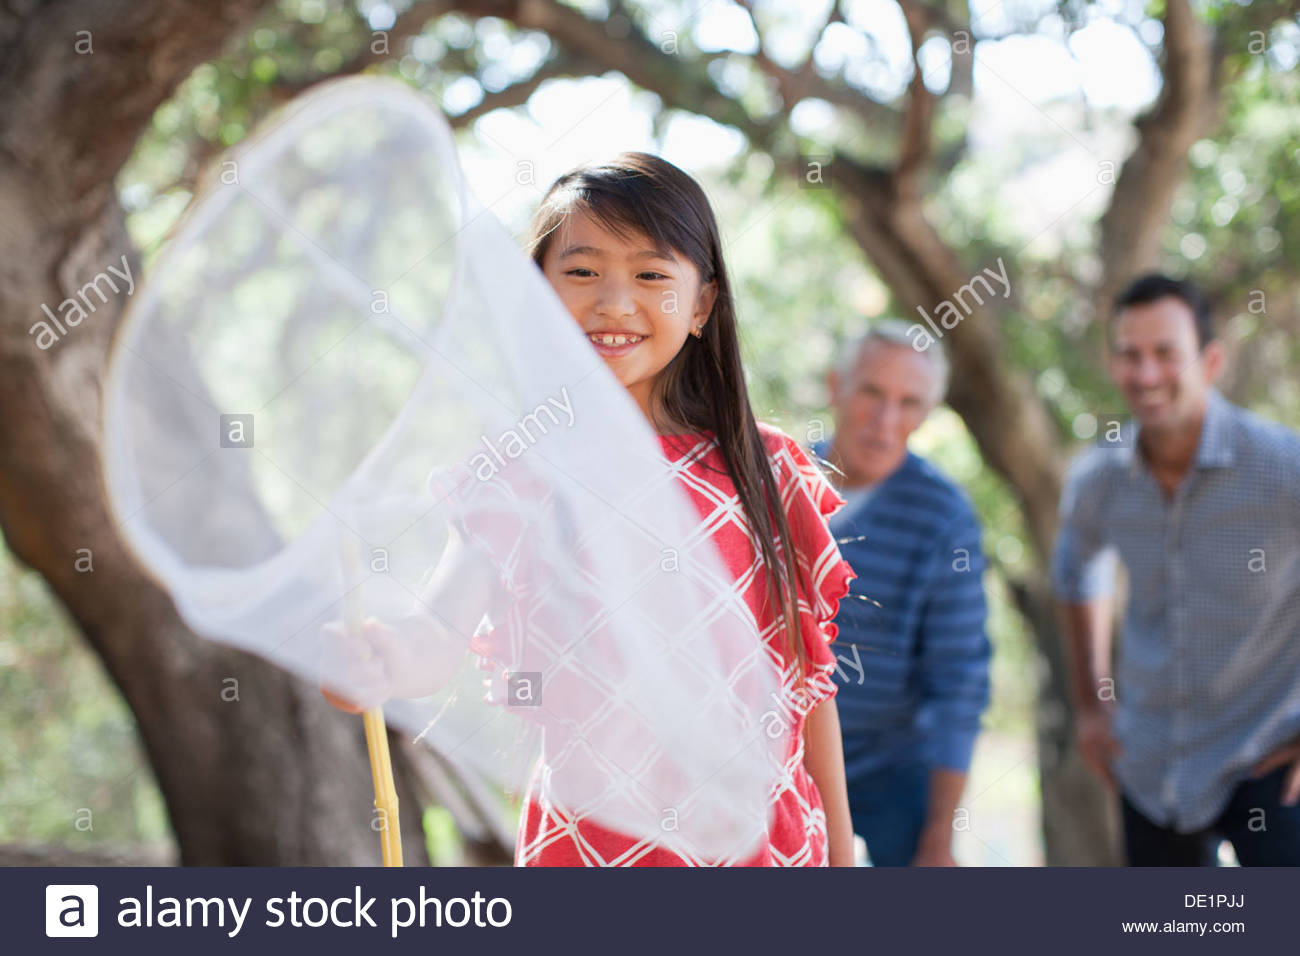 Smiling girl playing with butterfly net - Stock Image